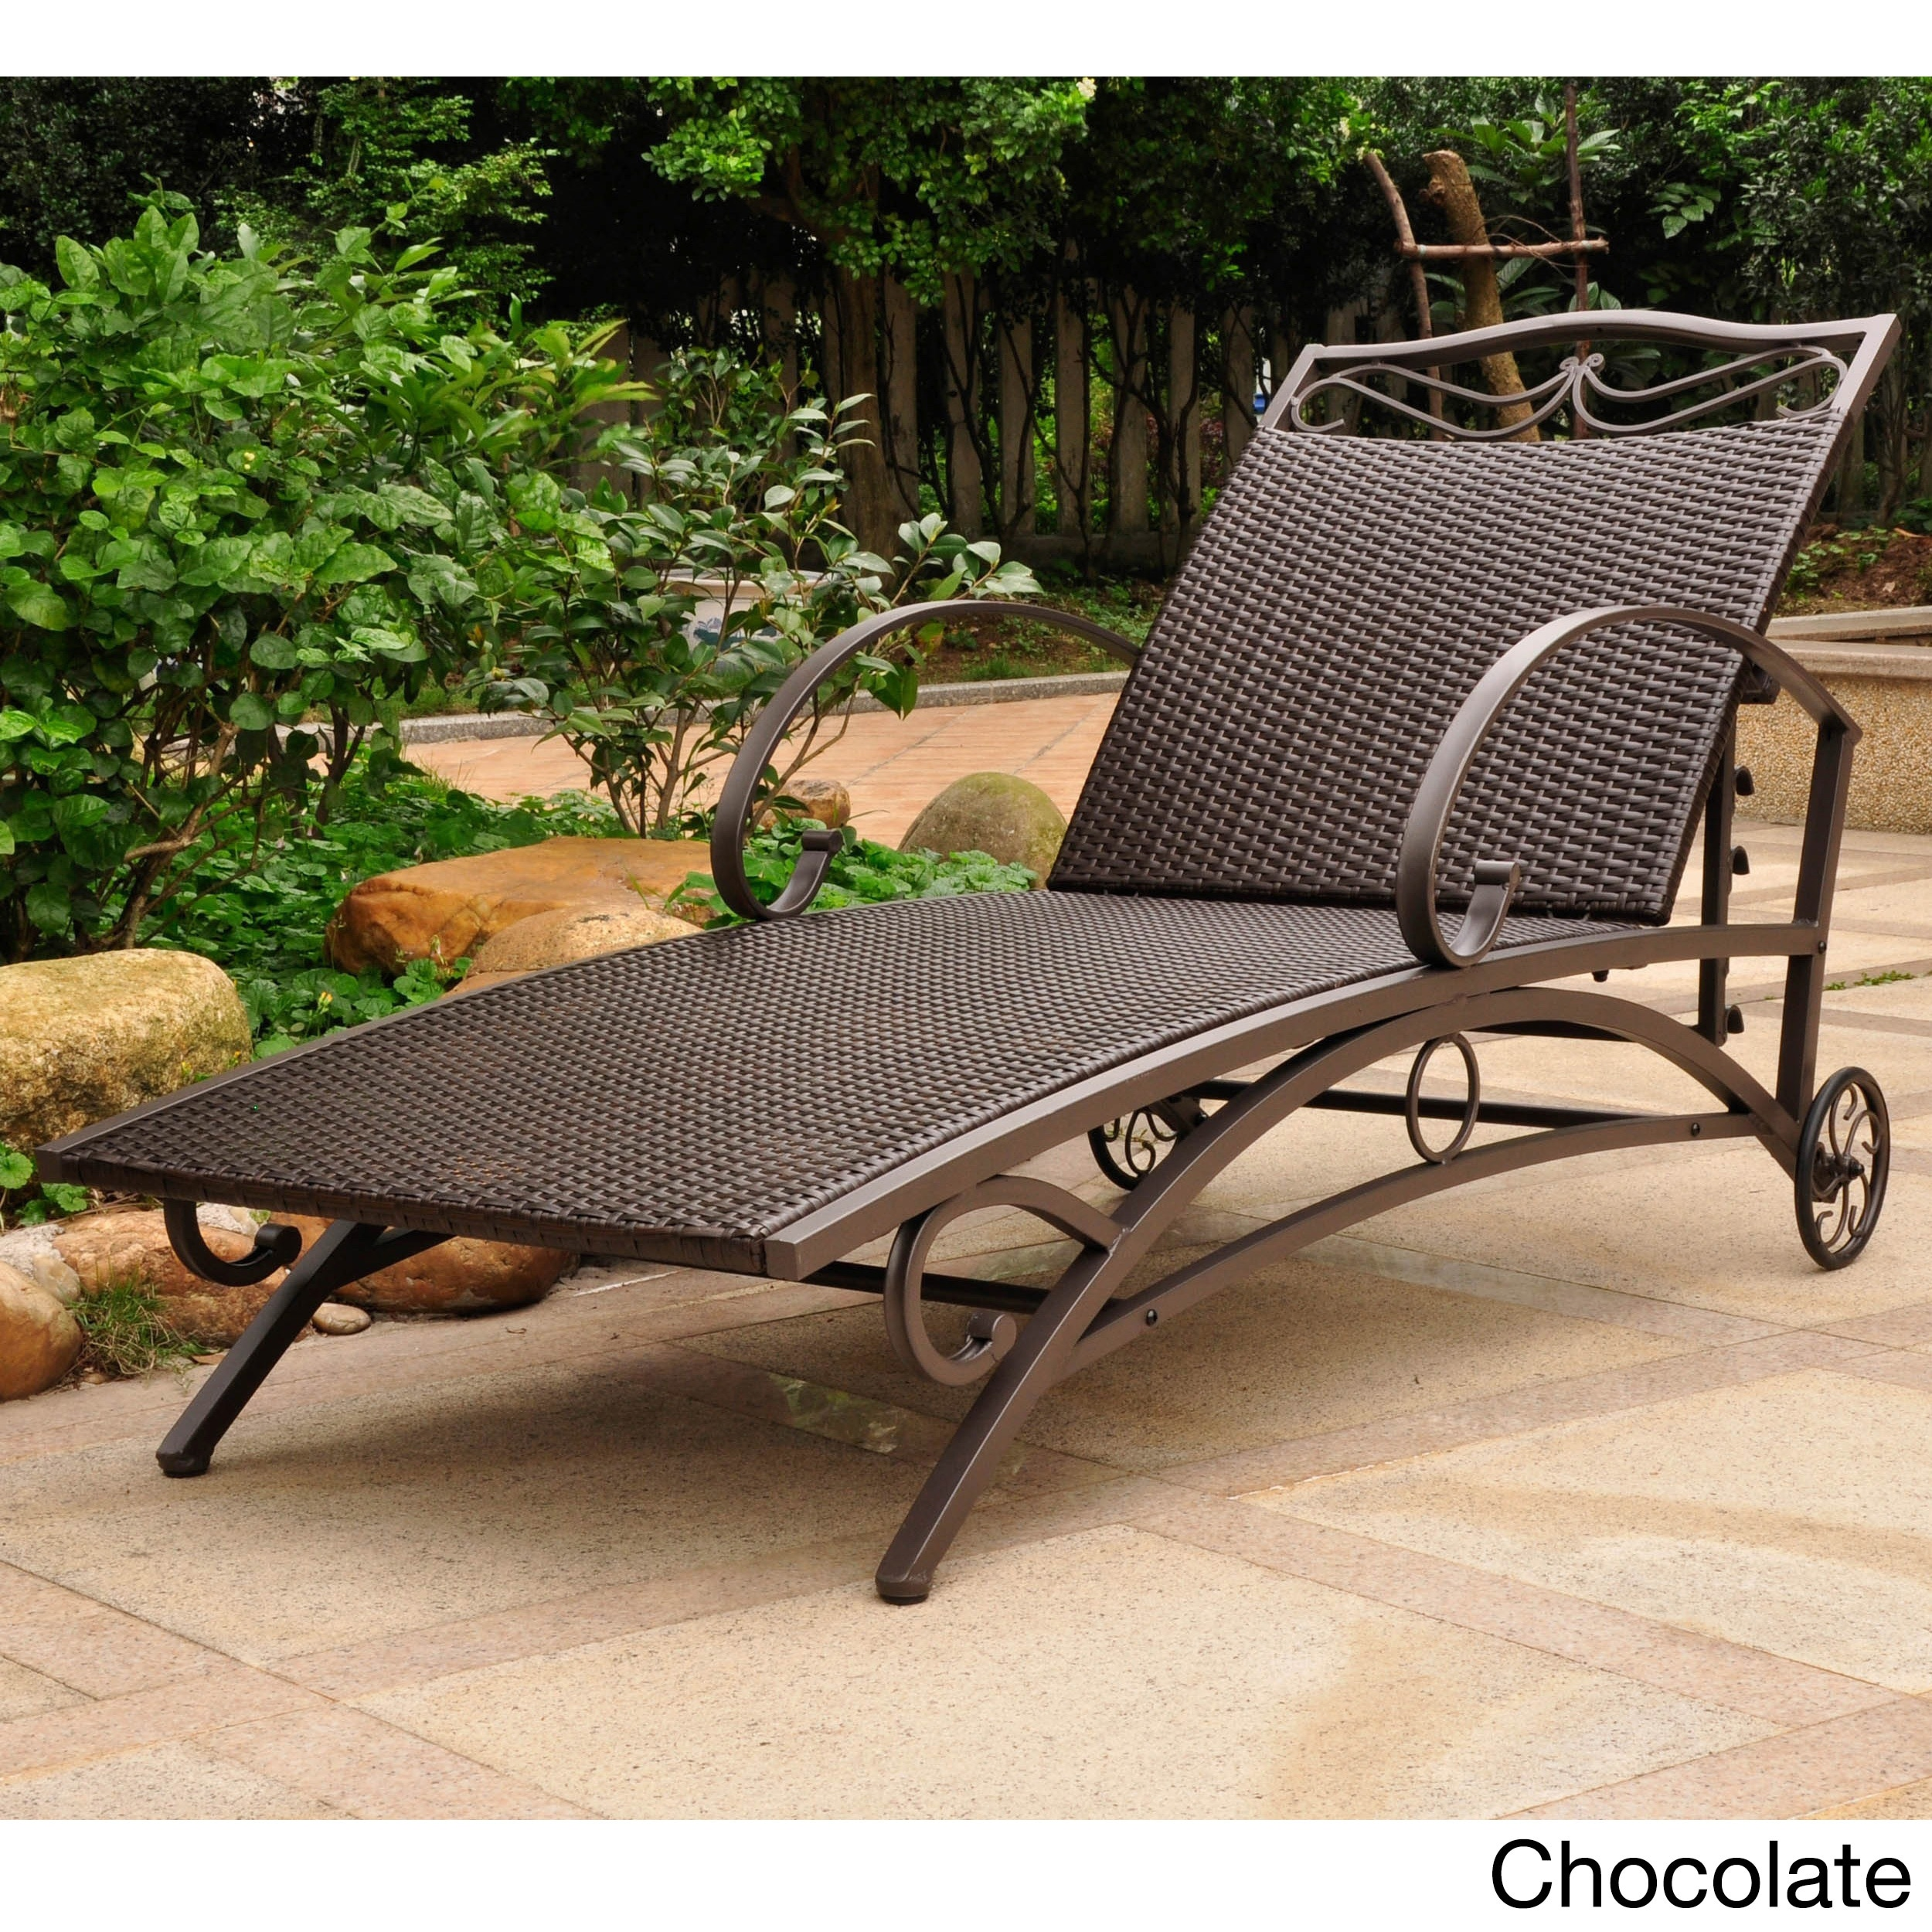 the best pool patio garden chaise of furniture lounge size cheap artsy plastic swimming in chairs full